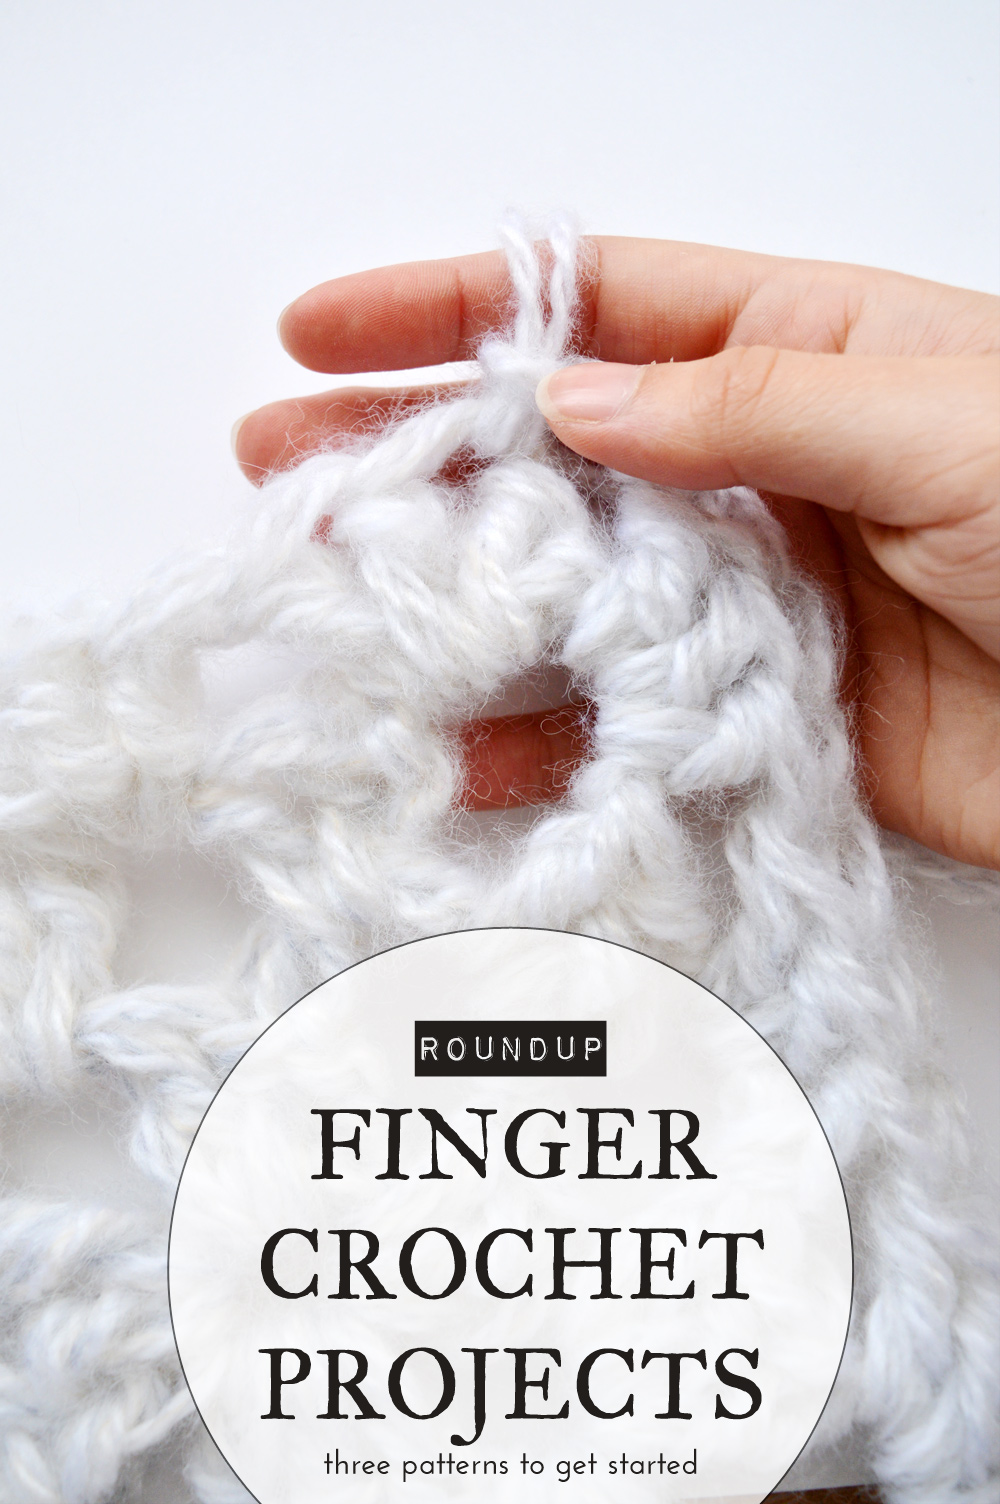 Crocheting With Fingers : finger-crochet-projects-roundup-Crafting-Fingers.jpg